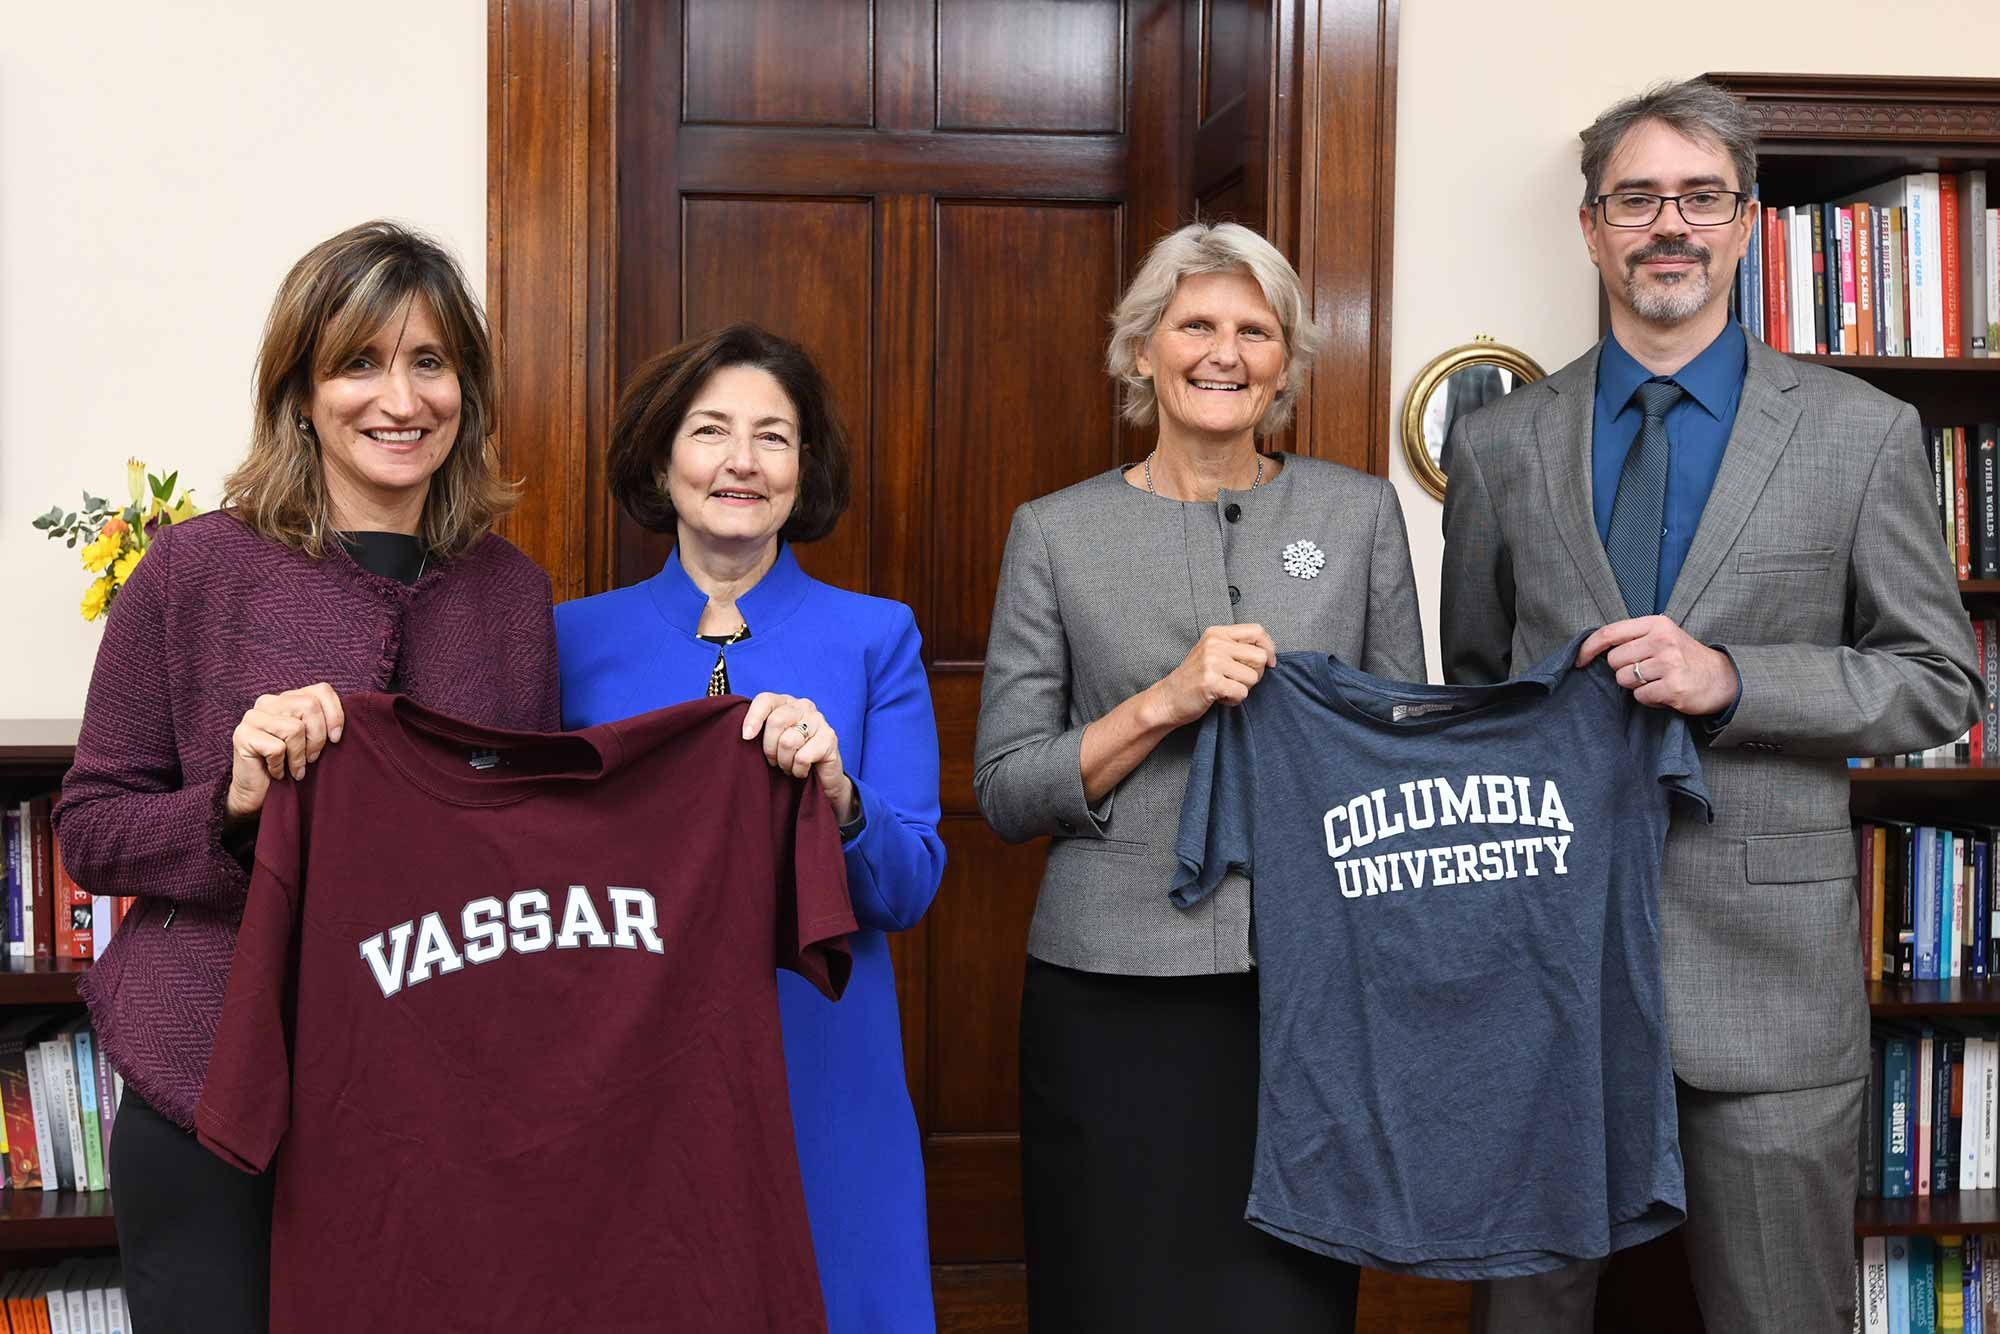 vassar college and columbia